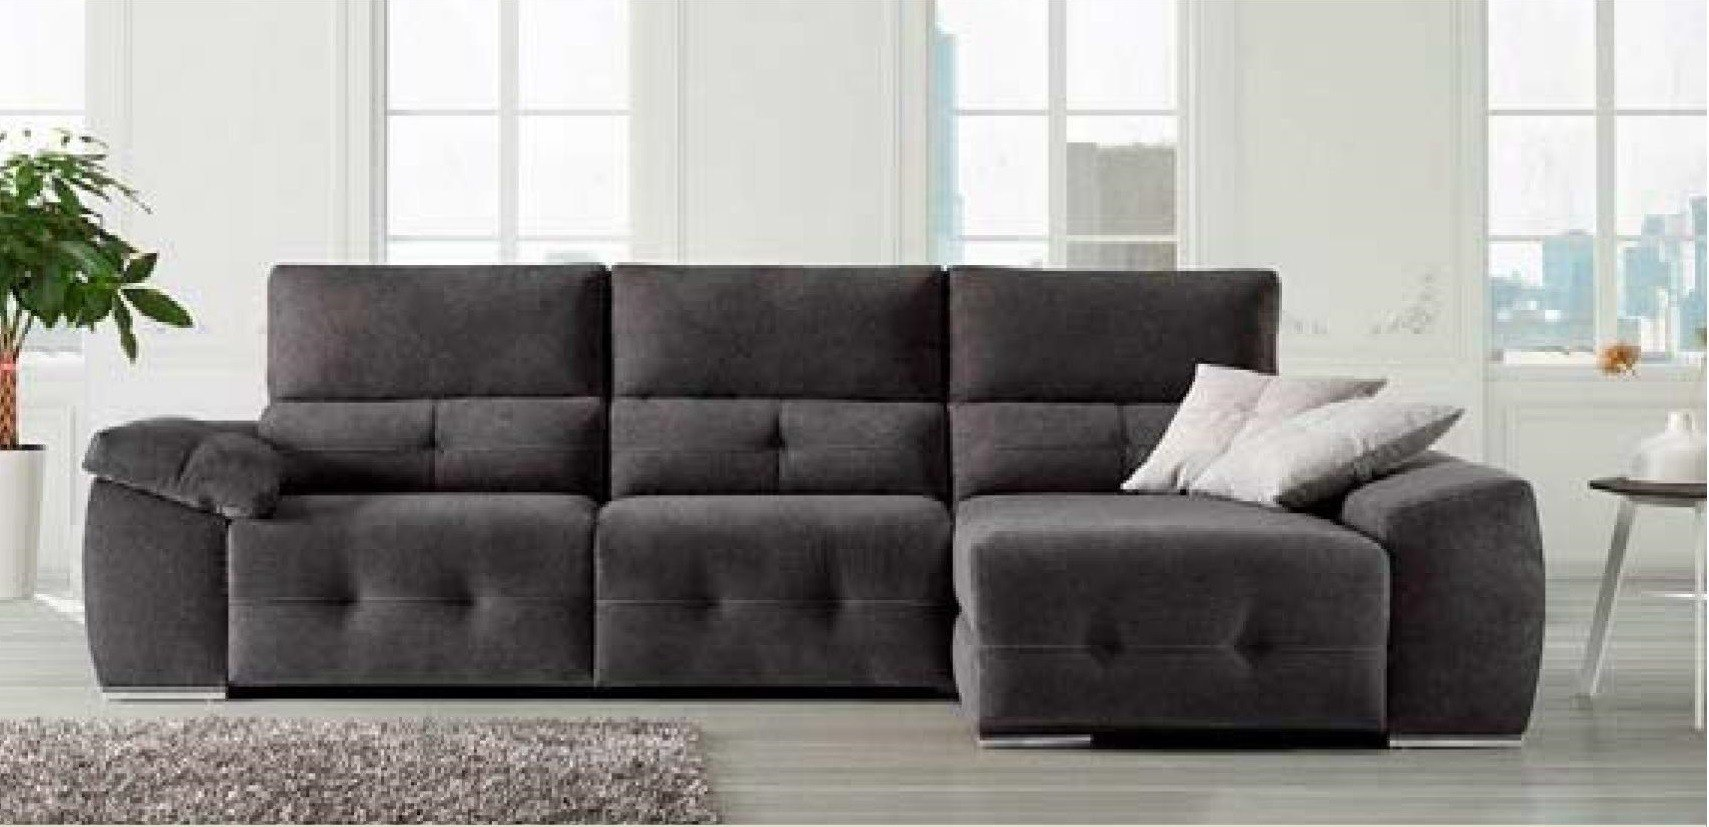 Sillones Valencia Qu Dance Chaislongues Sofas Y Sillones Chaislongue